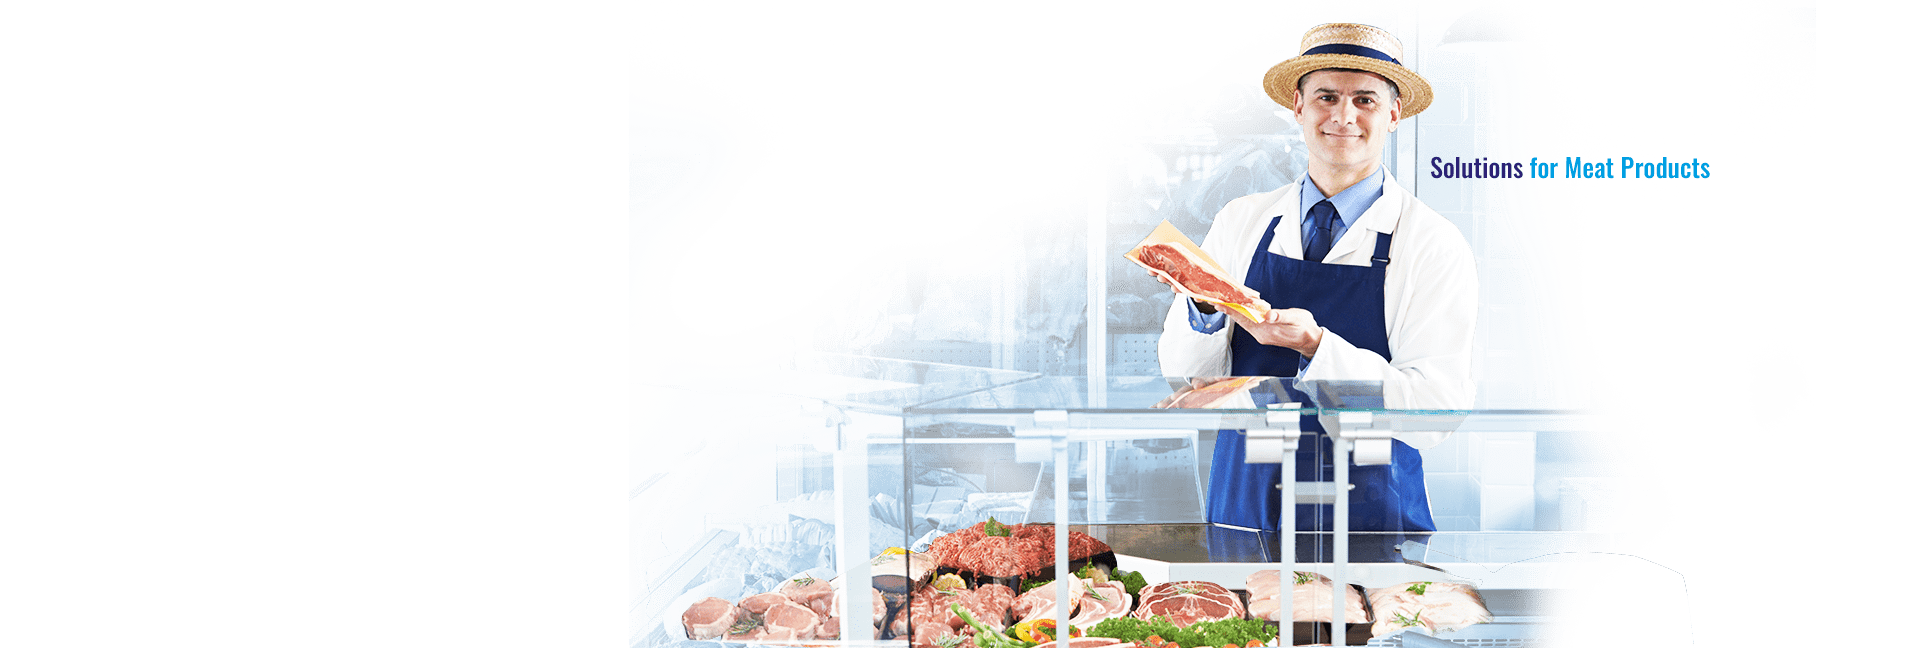 Solutions for Meat Products